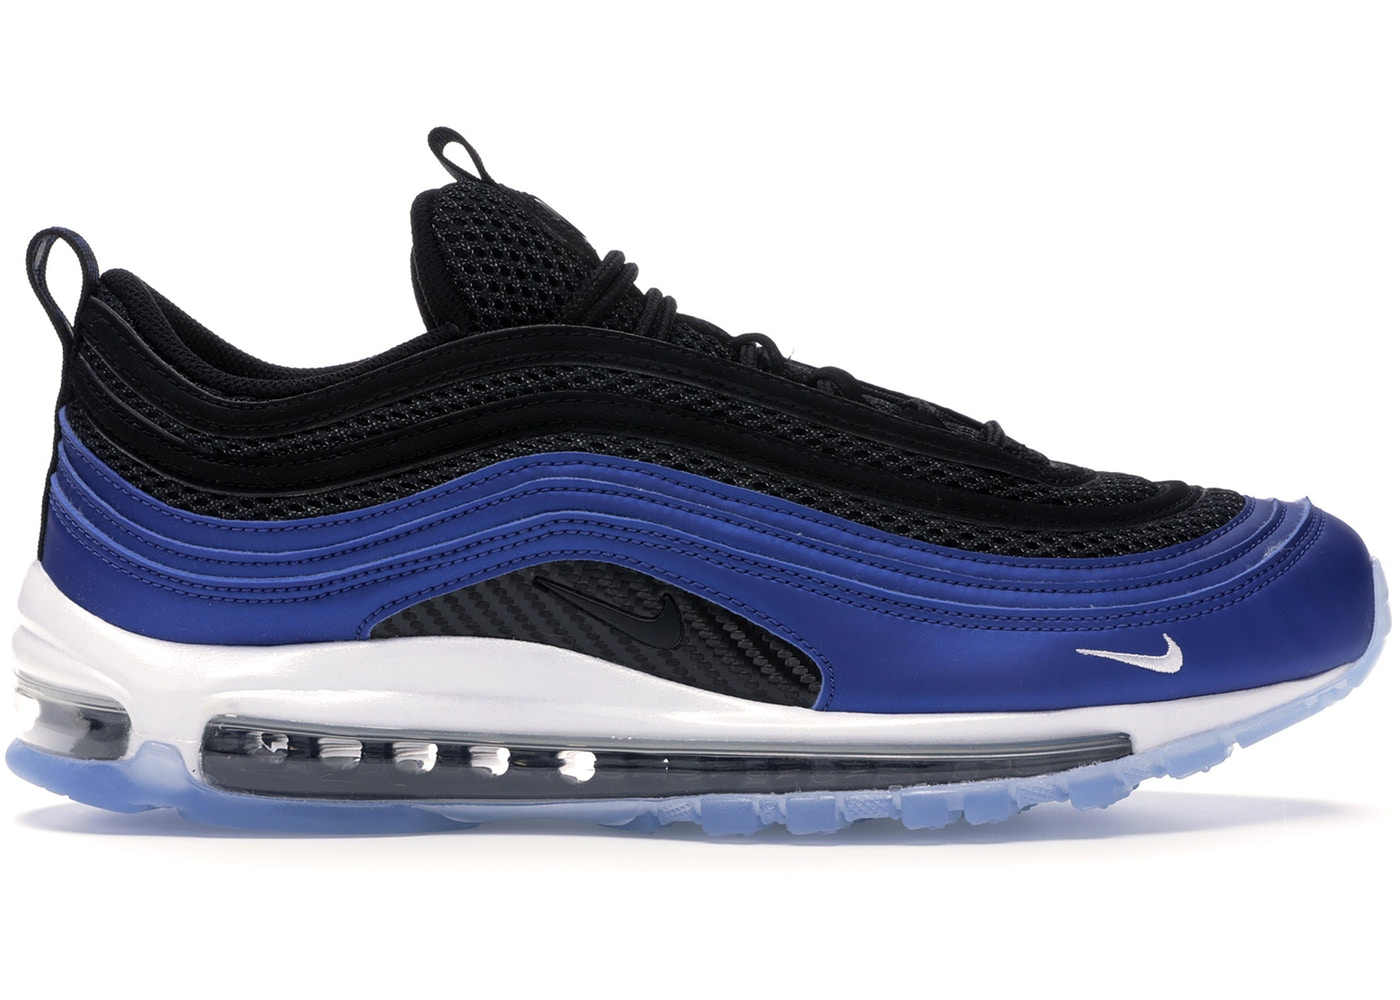 High Quality Nike Air Max 97 Ultra 17 Blue White Black Sneakers Men's Running Shoes #SE004370